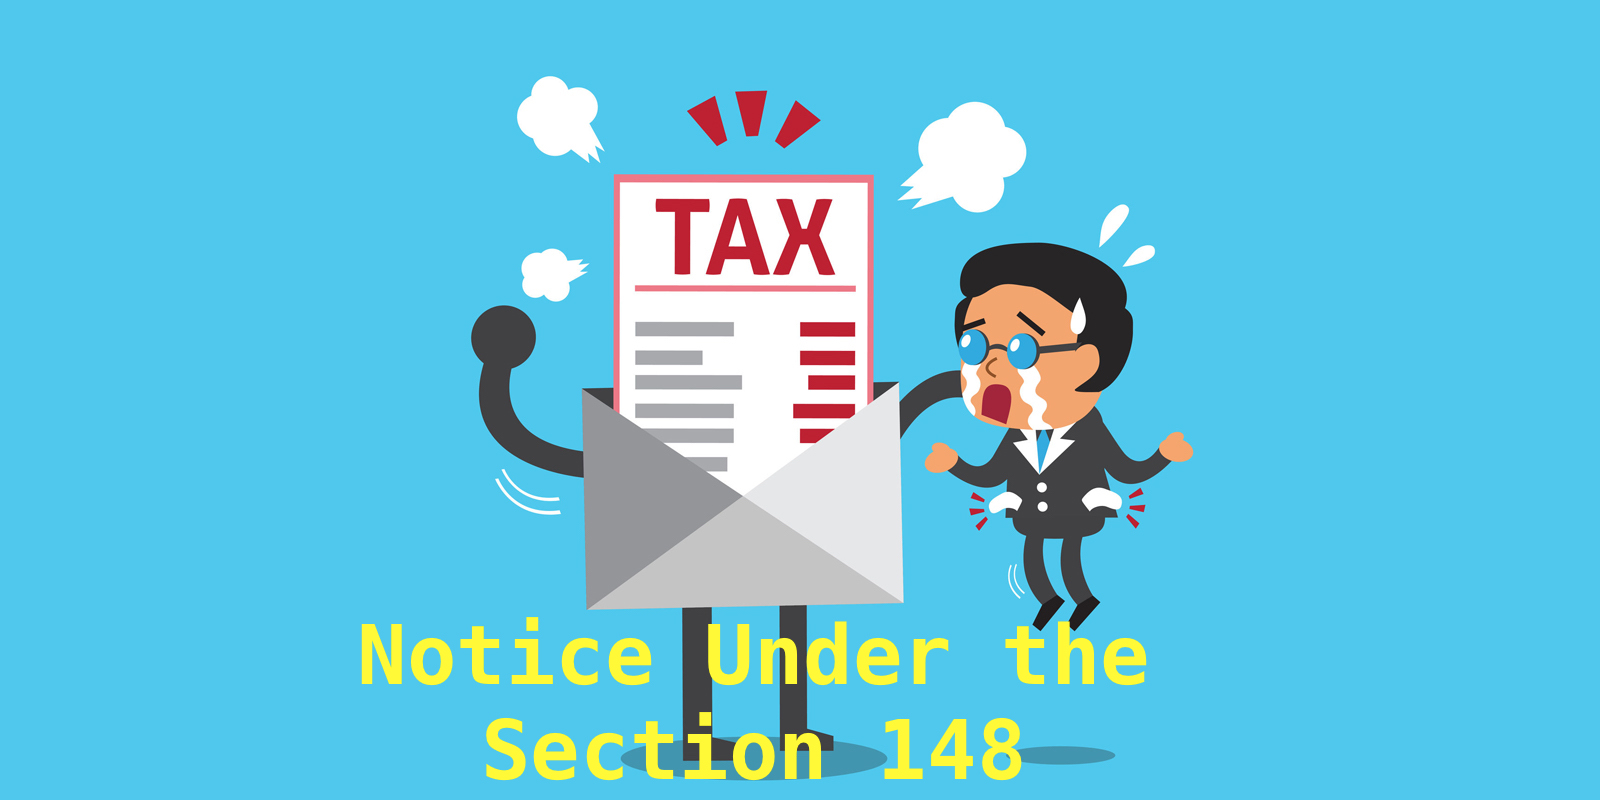 NOTICE ISSUED UNDER SECTION 148